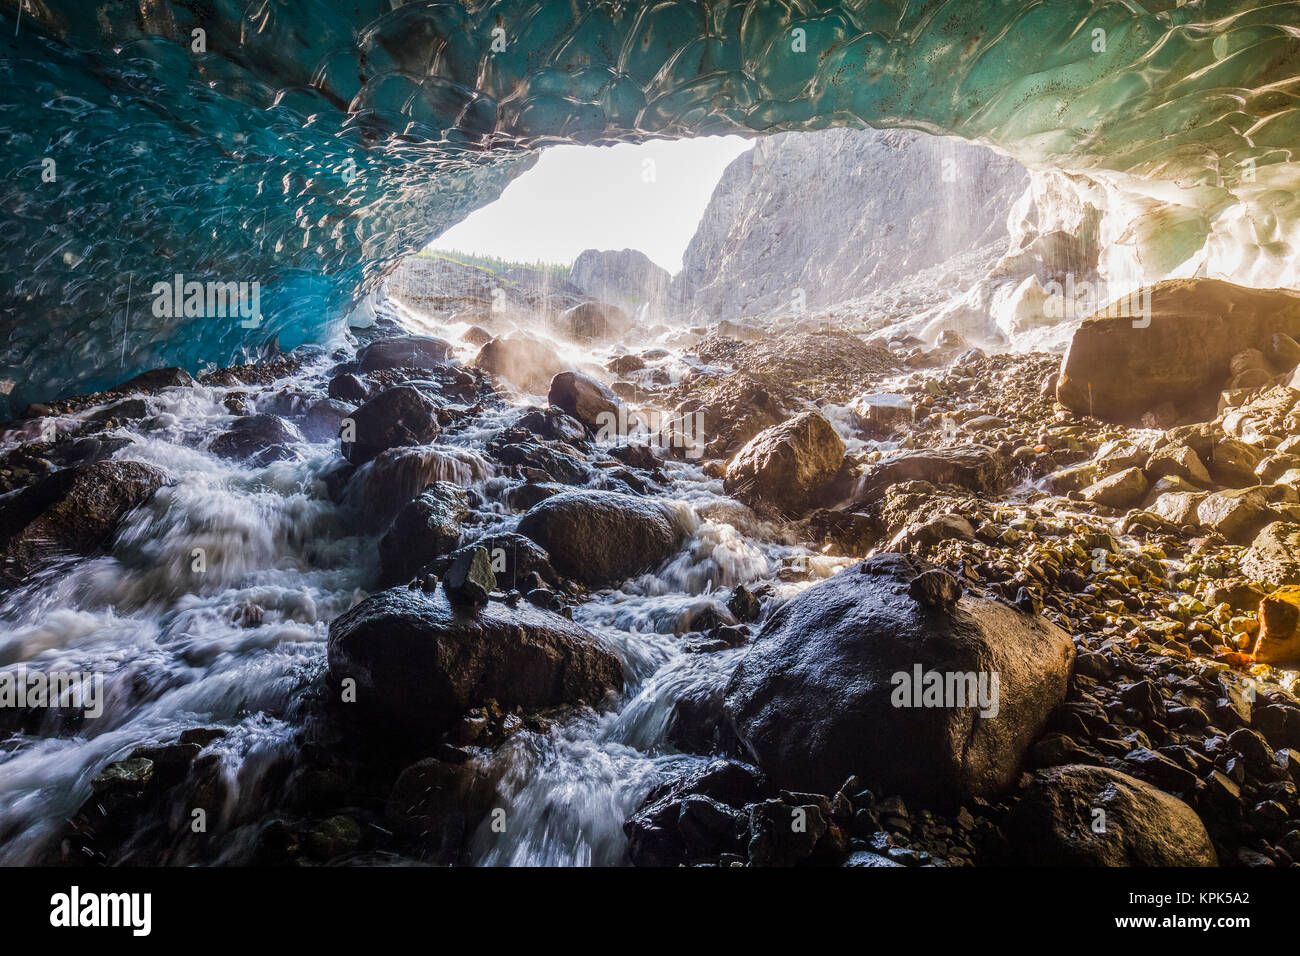 Water cascades over rocks inside a cave beneath the ice of Root Glacier in Wrangell-St. Elias National Park; Alaska, - Stock Image